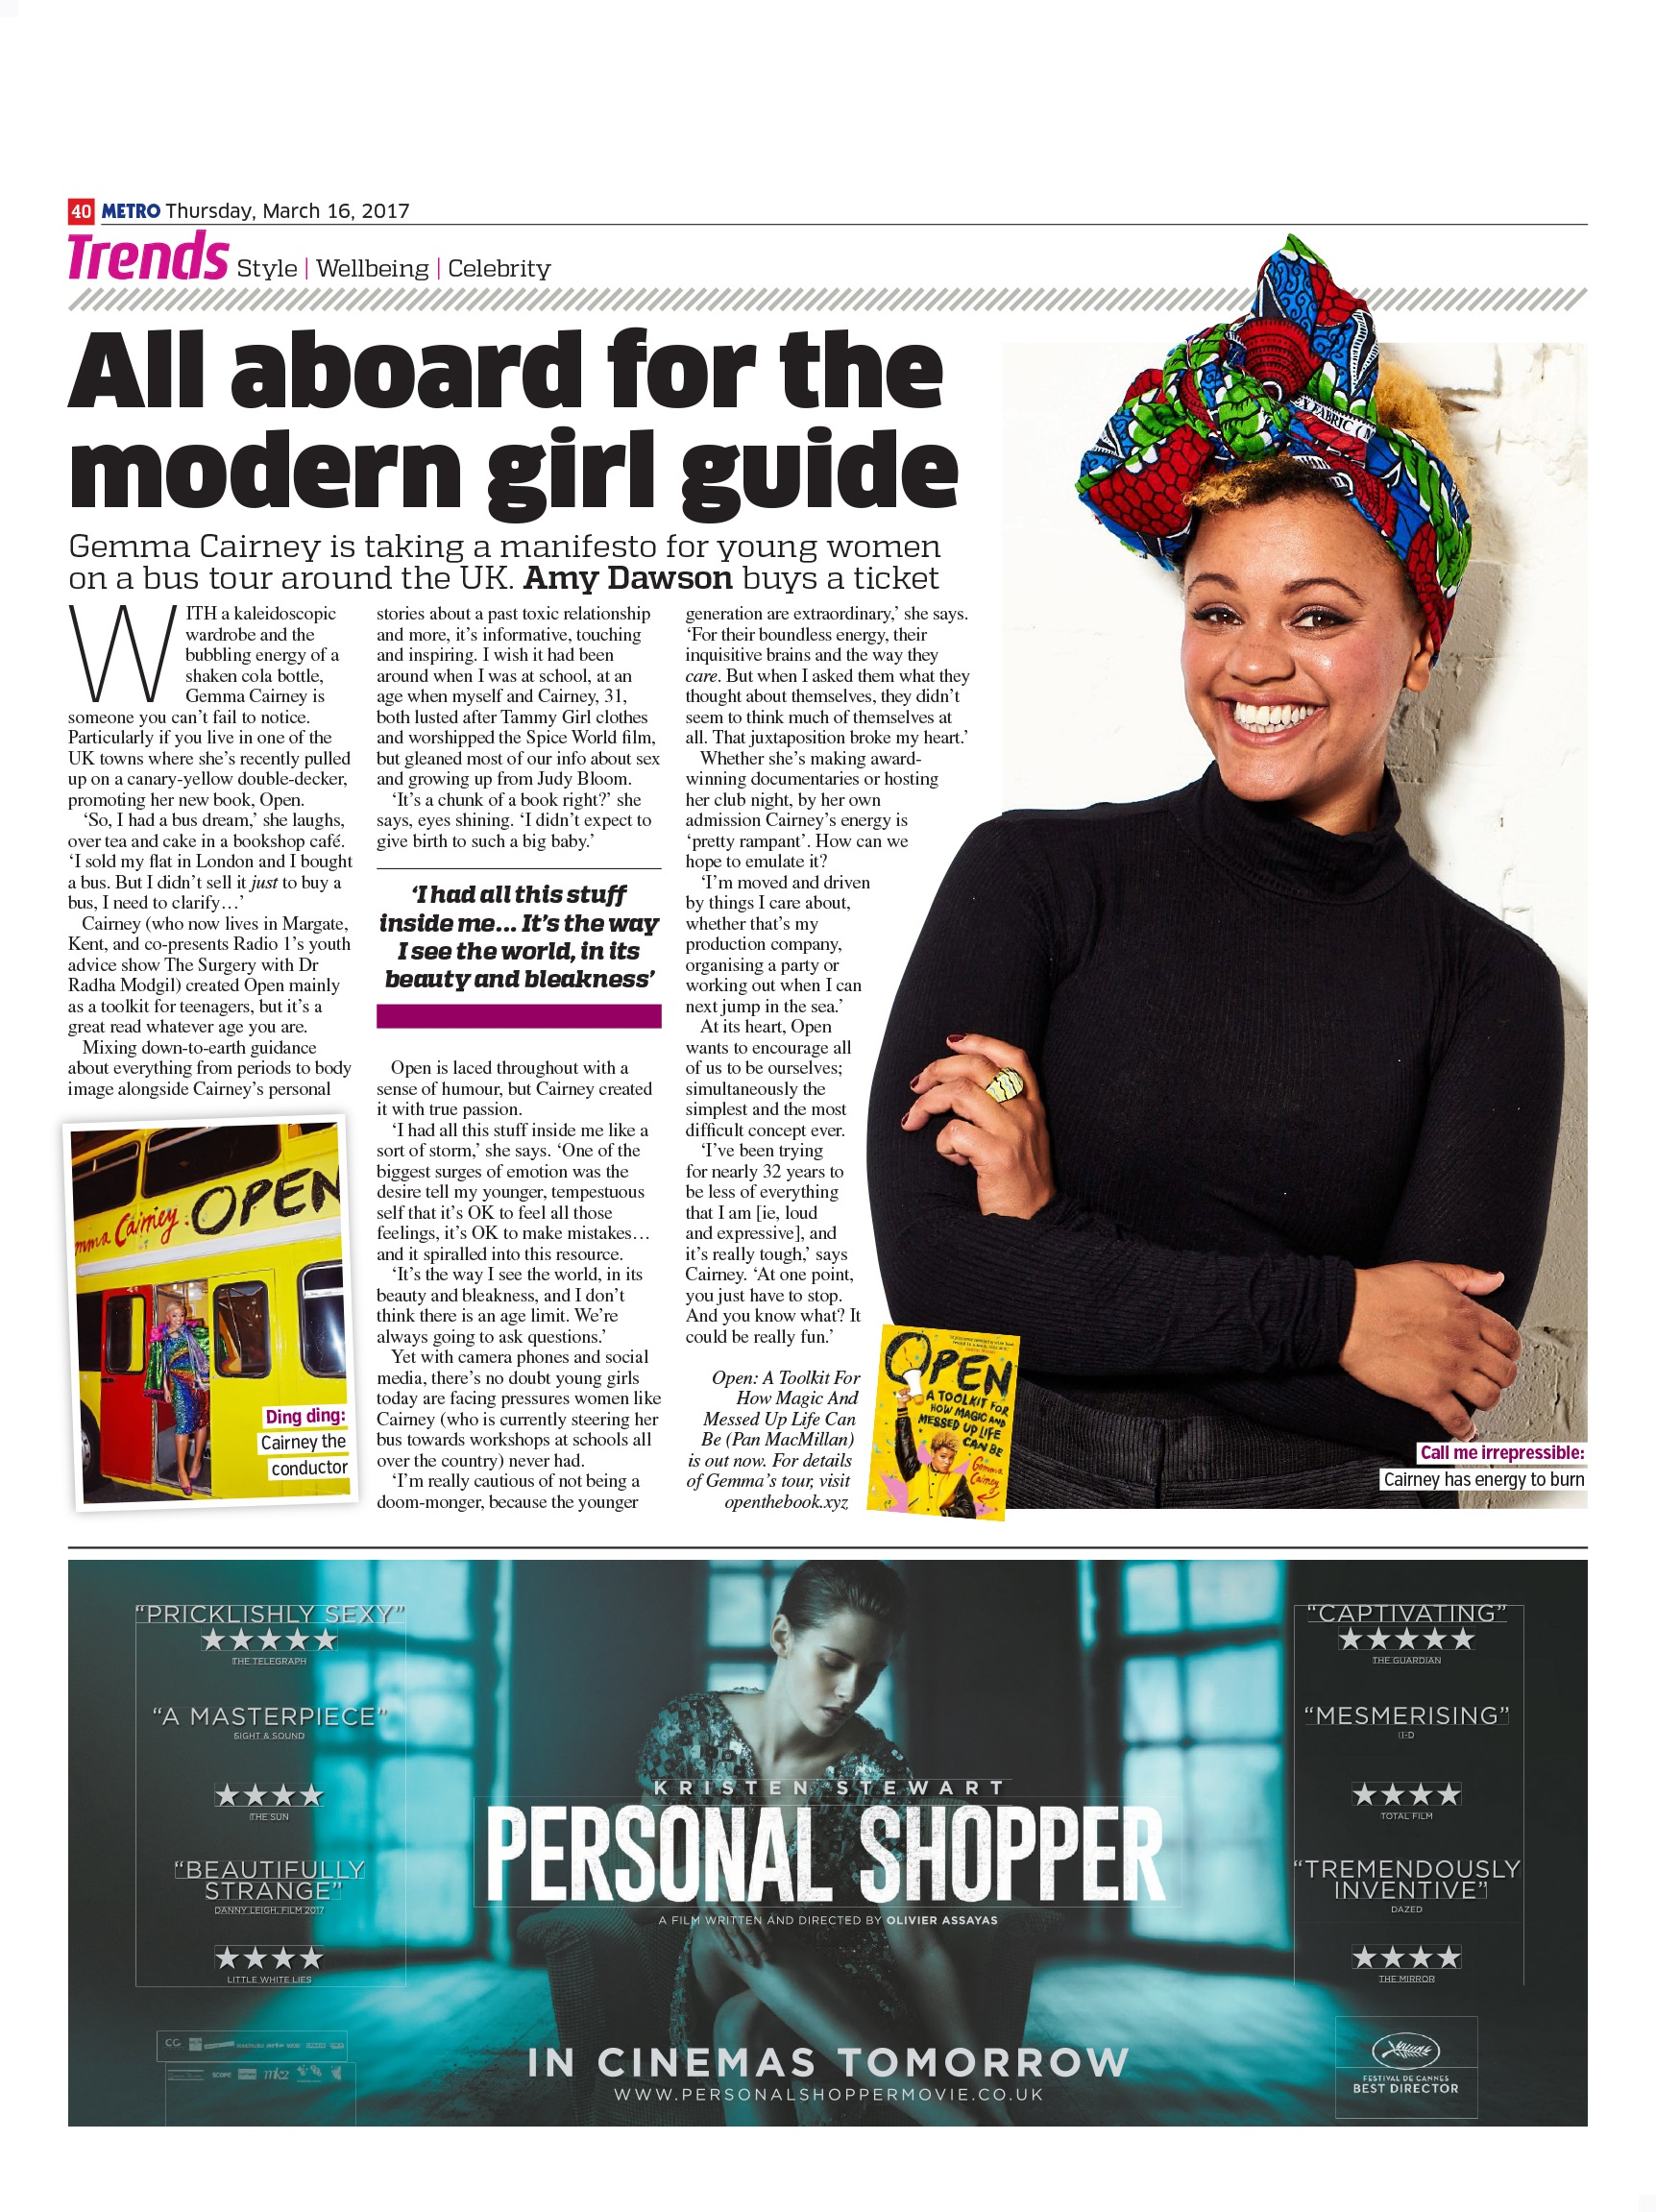 All Aboard For The Modern Girl Guide (Metro, 16th Mar 2017)